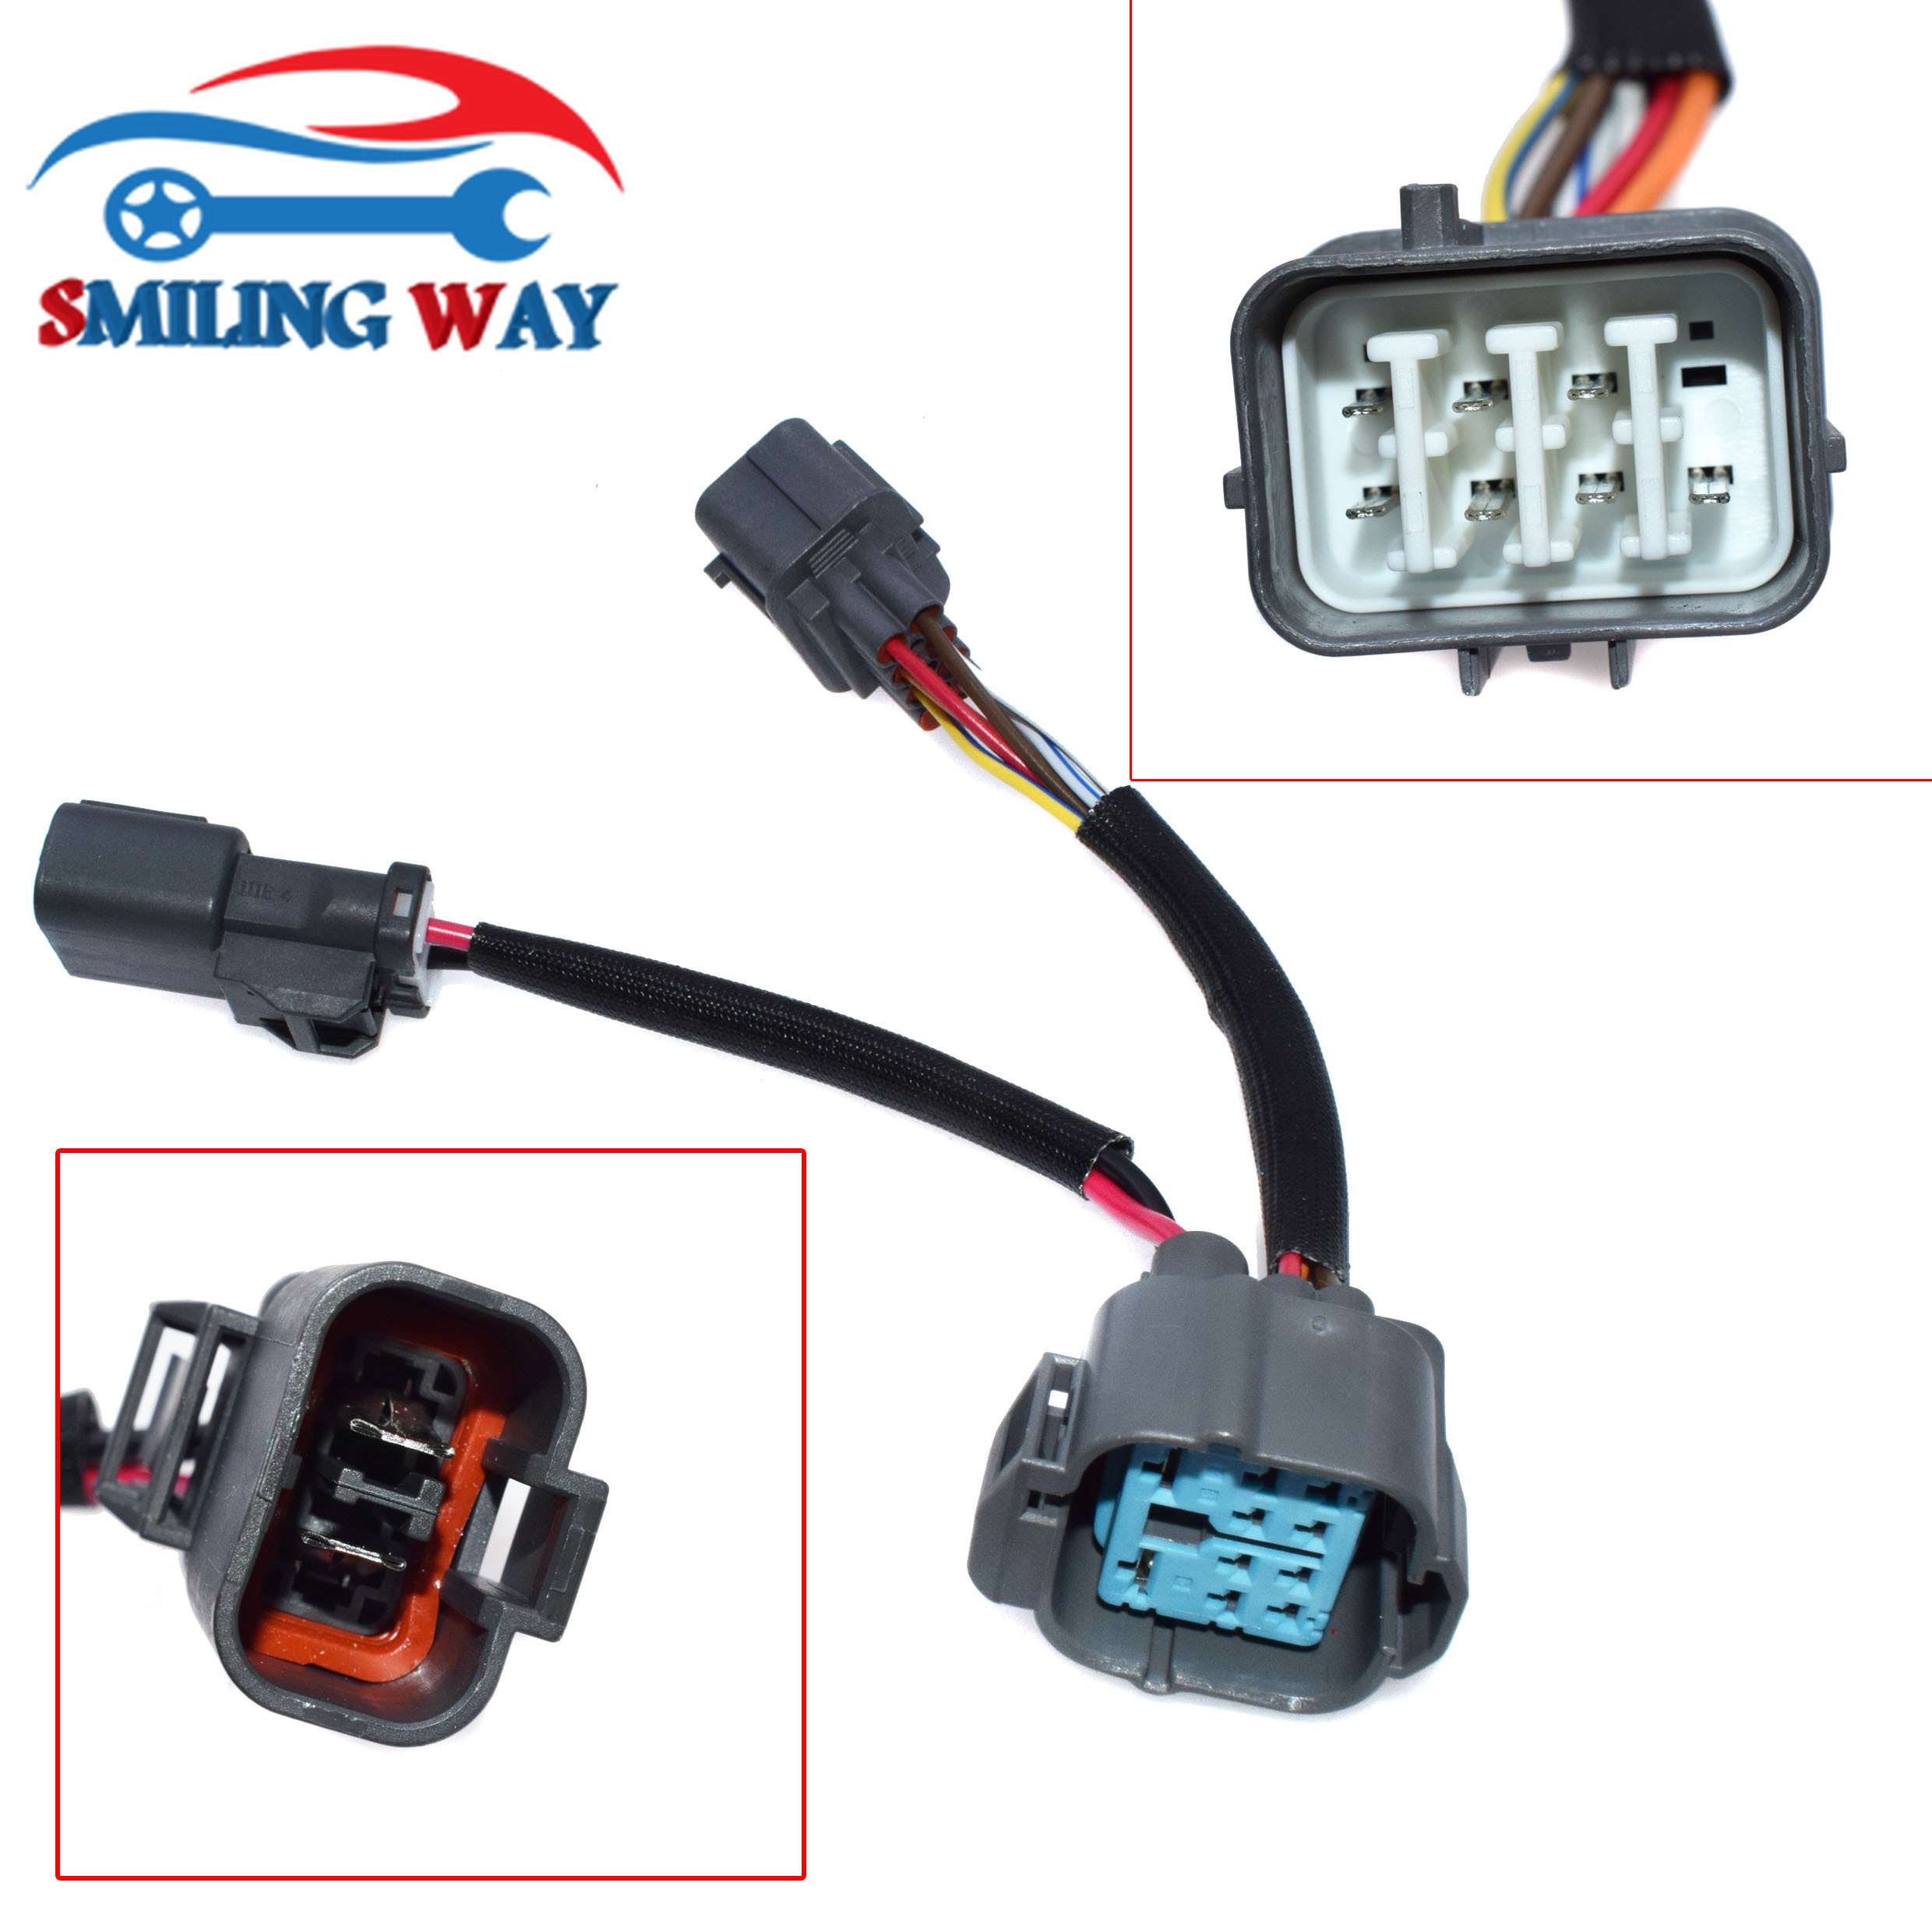 US $12.21 22% OFF|OBD1 to 10 Pin OBD2 Distributor Jumper Connector on